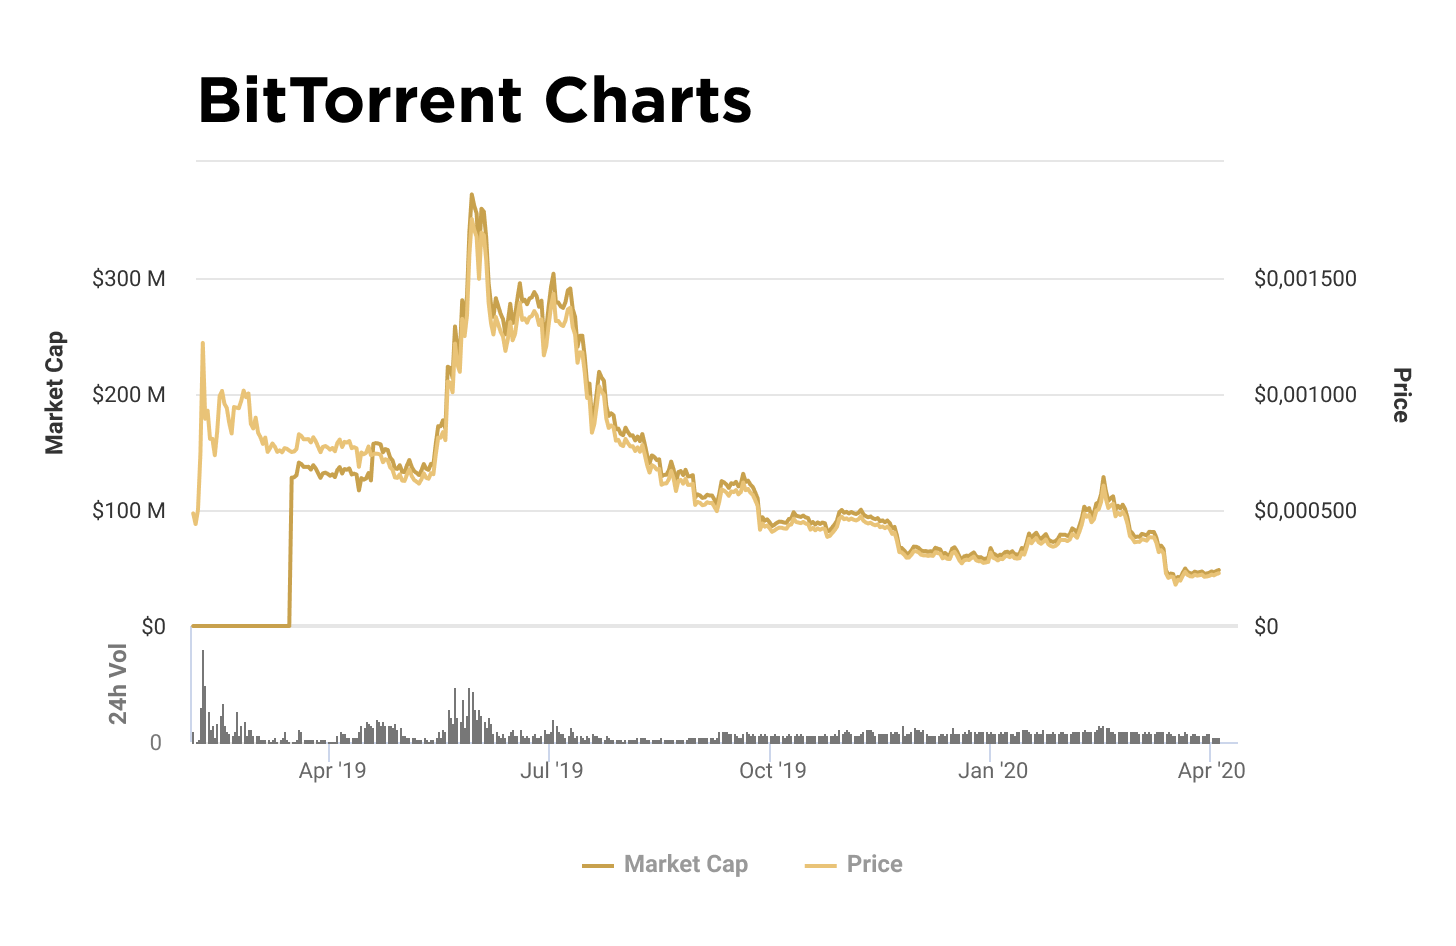 Charts of capitalization and value of BTT token